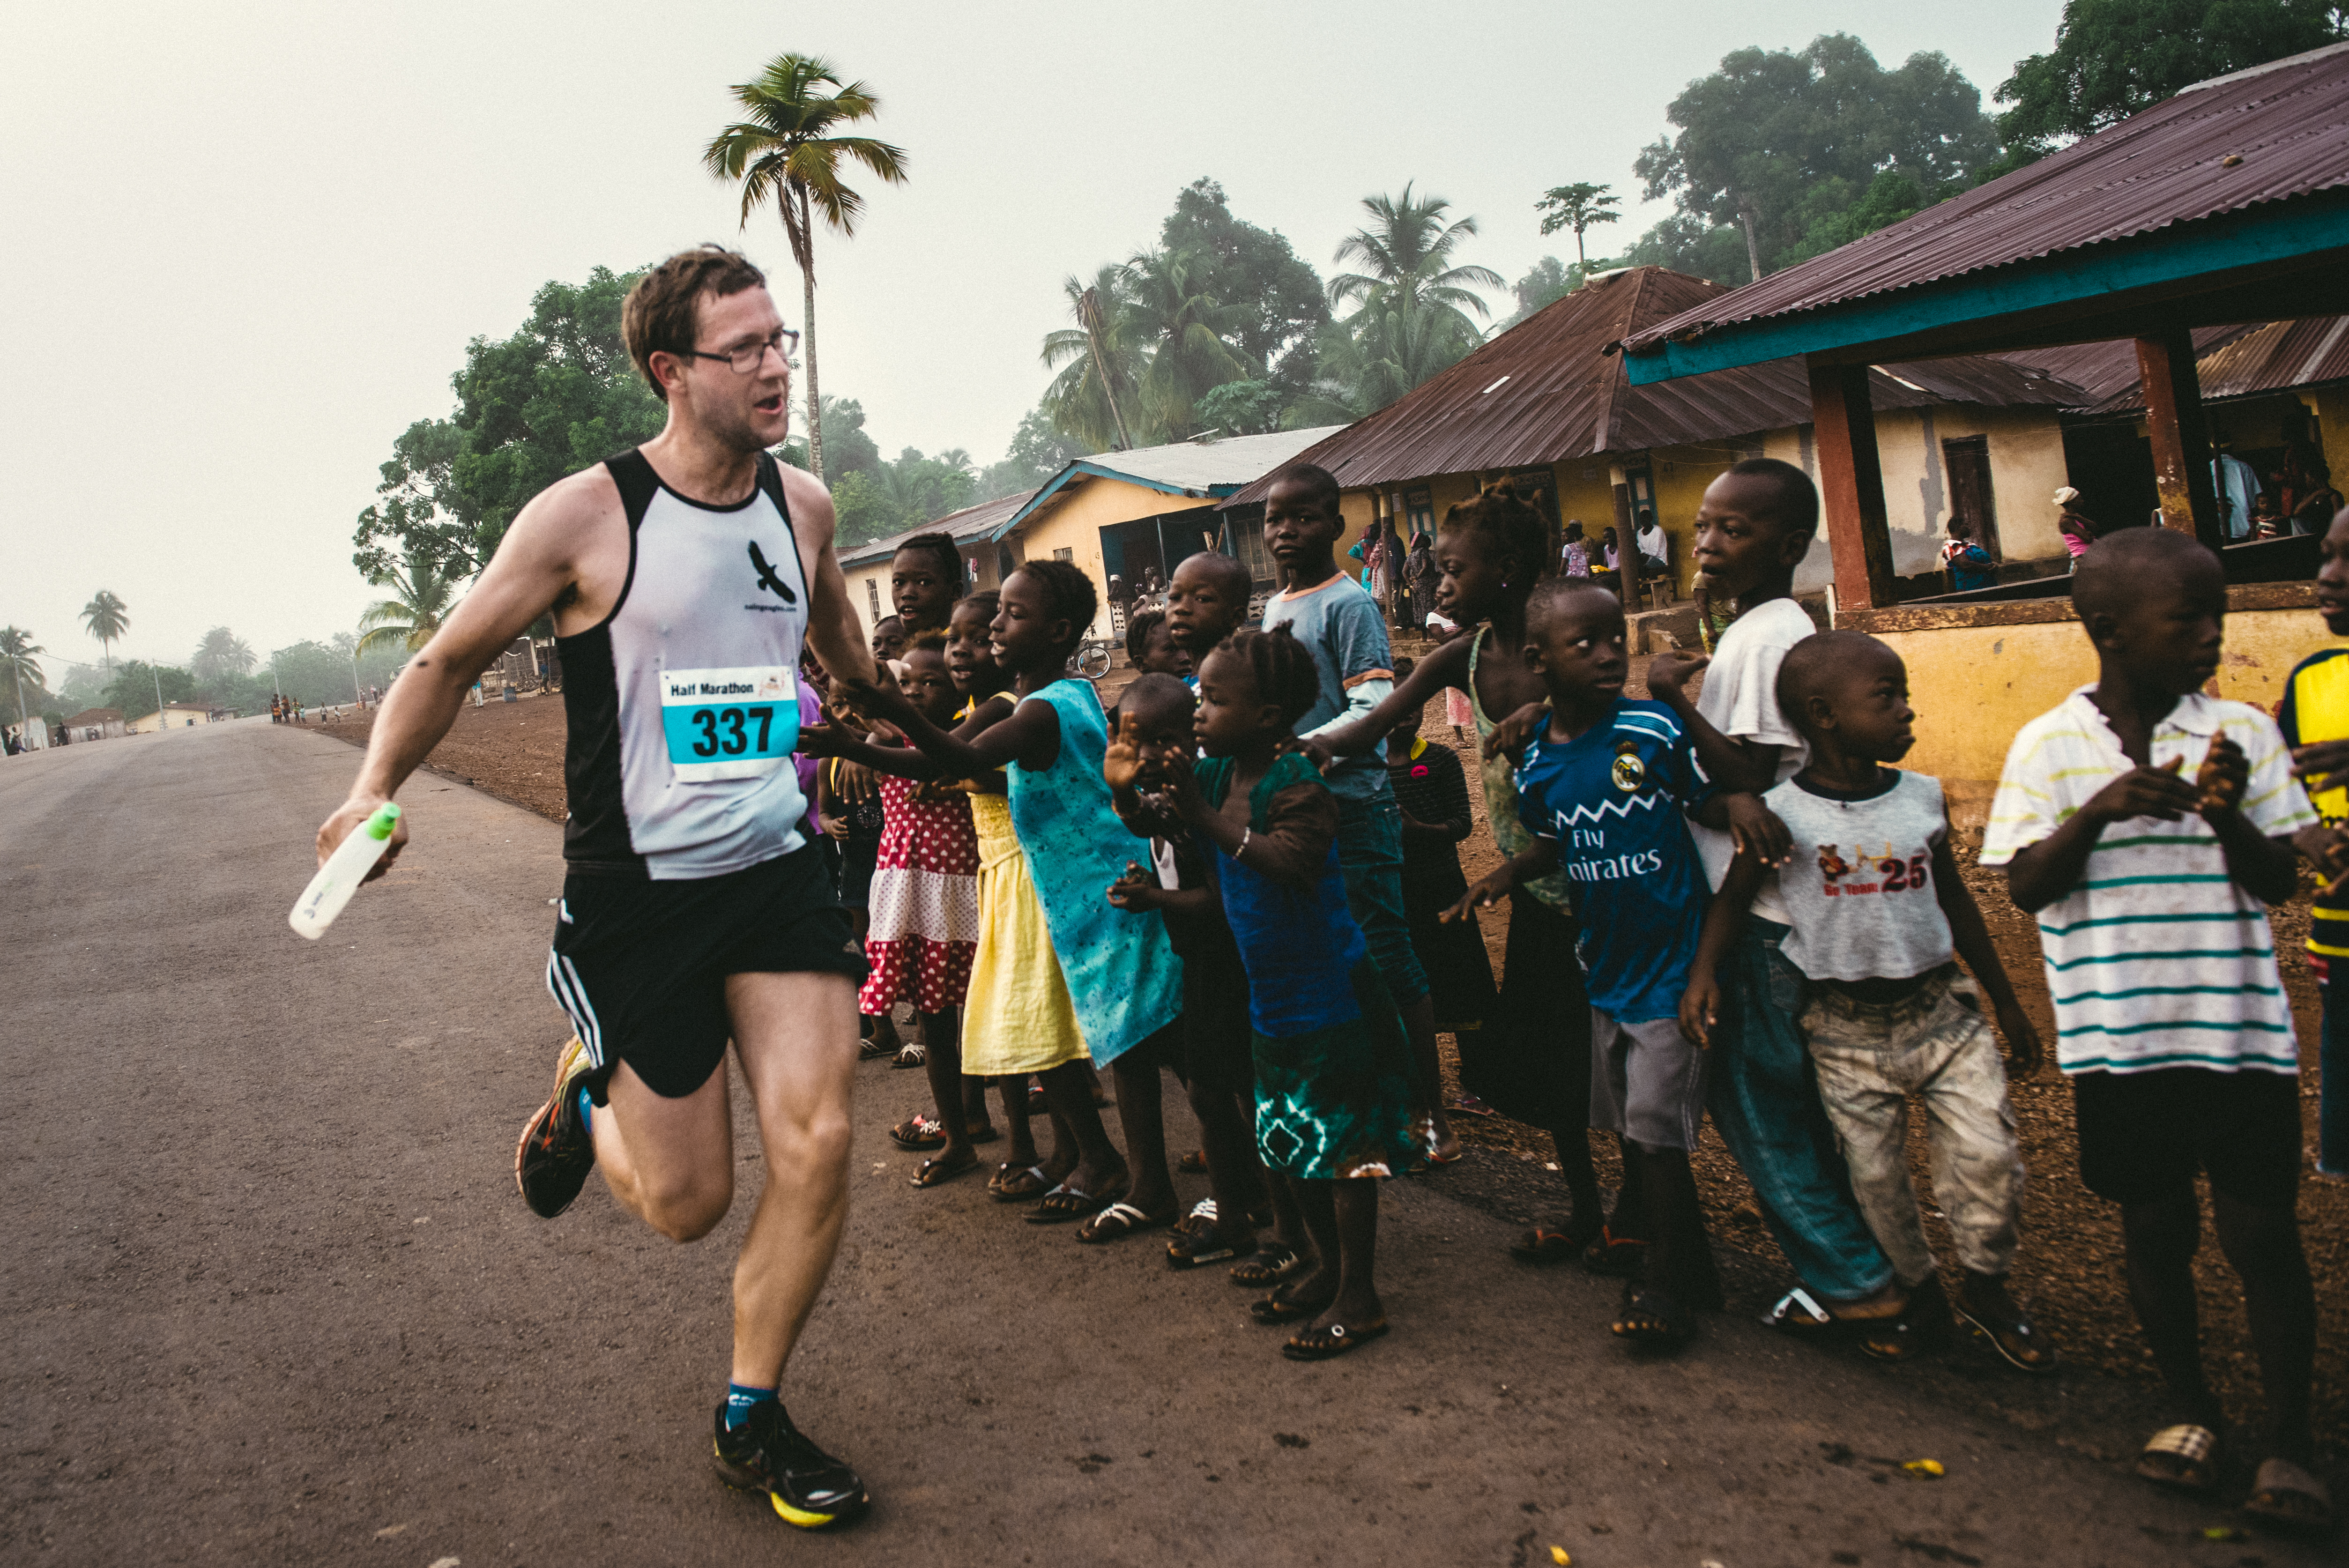 Andy high-fives children while running